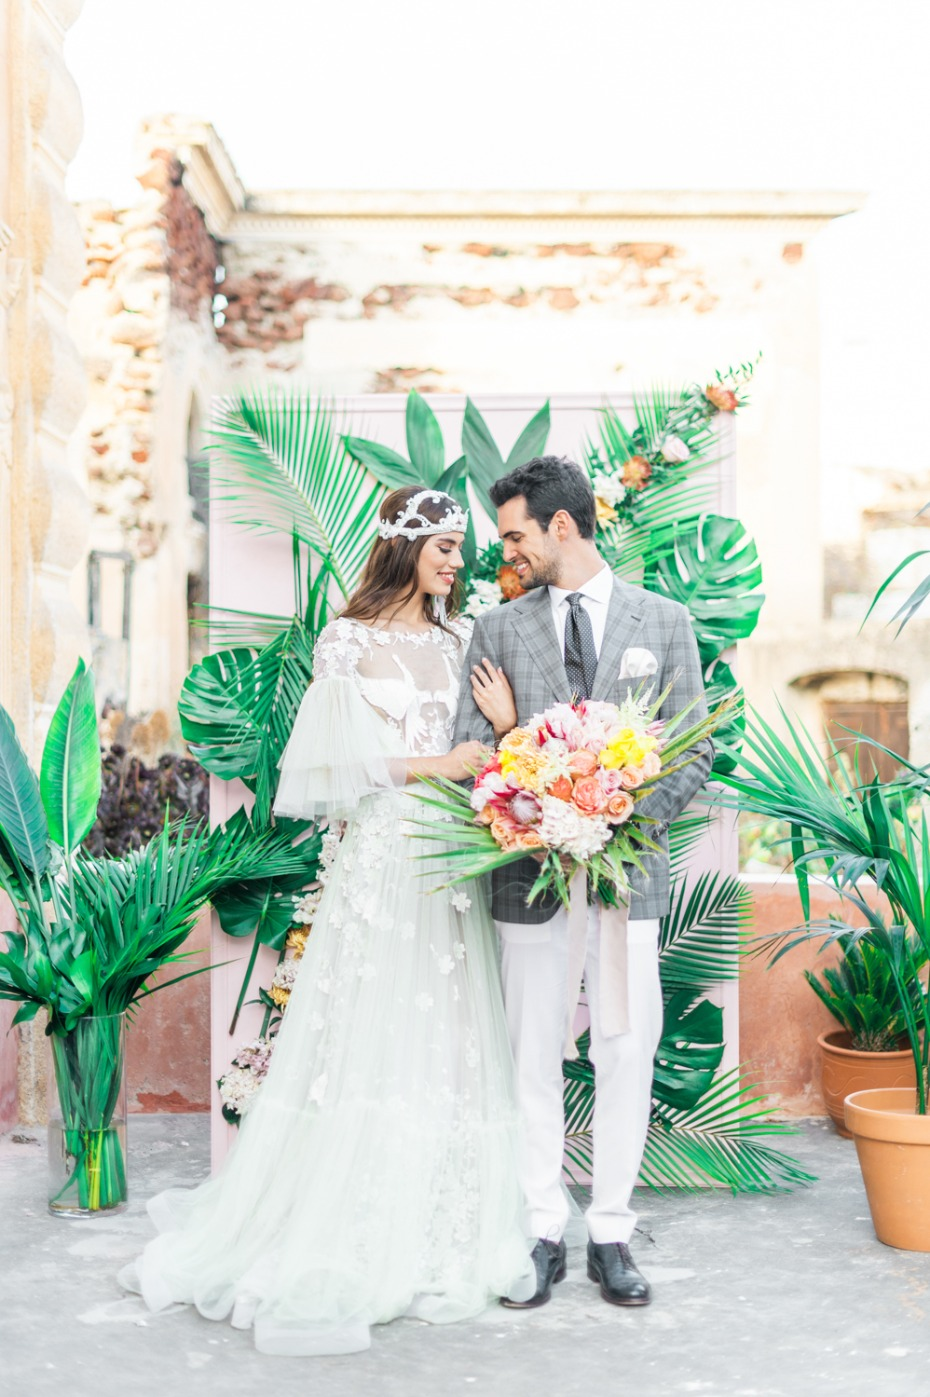 Tropical boho wedding ideas from Greece